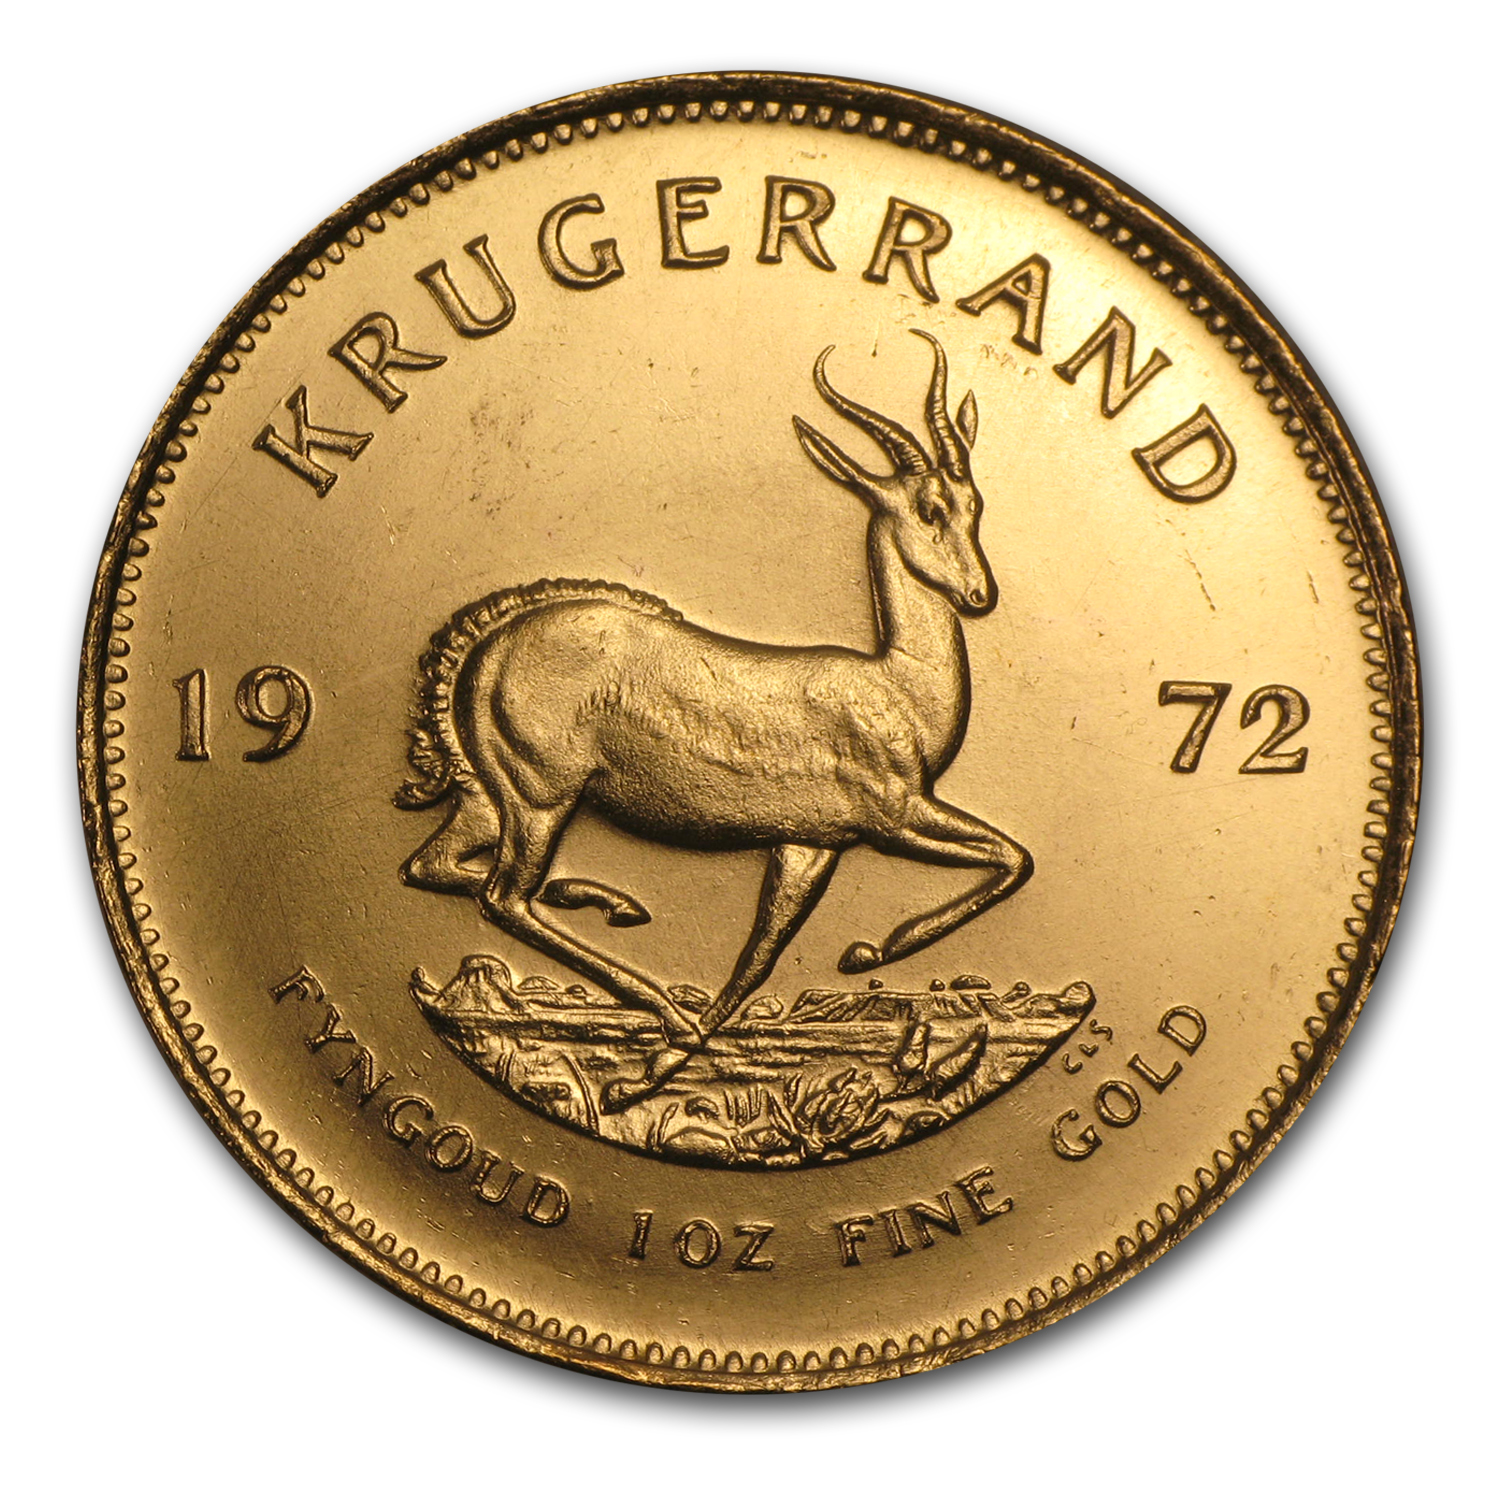 1972 1 oz Gold South African Krugerrand